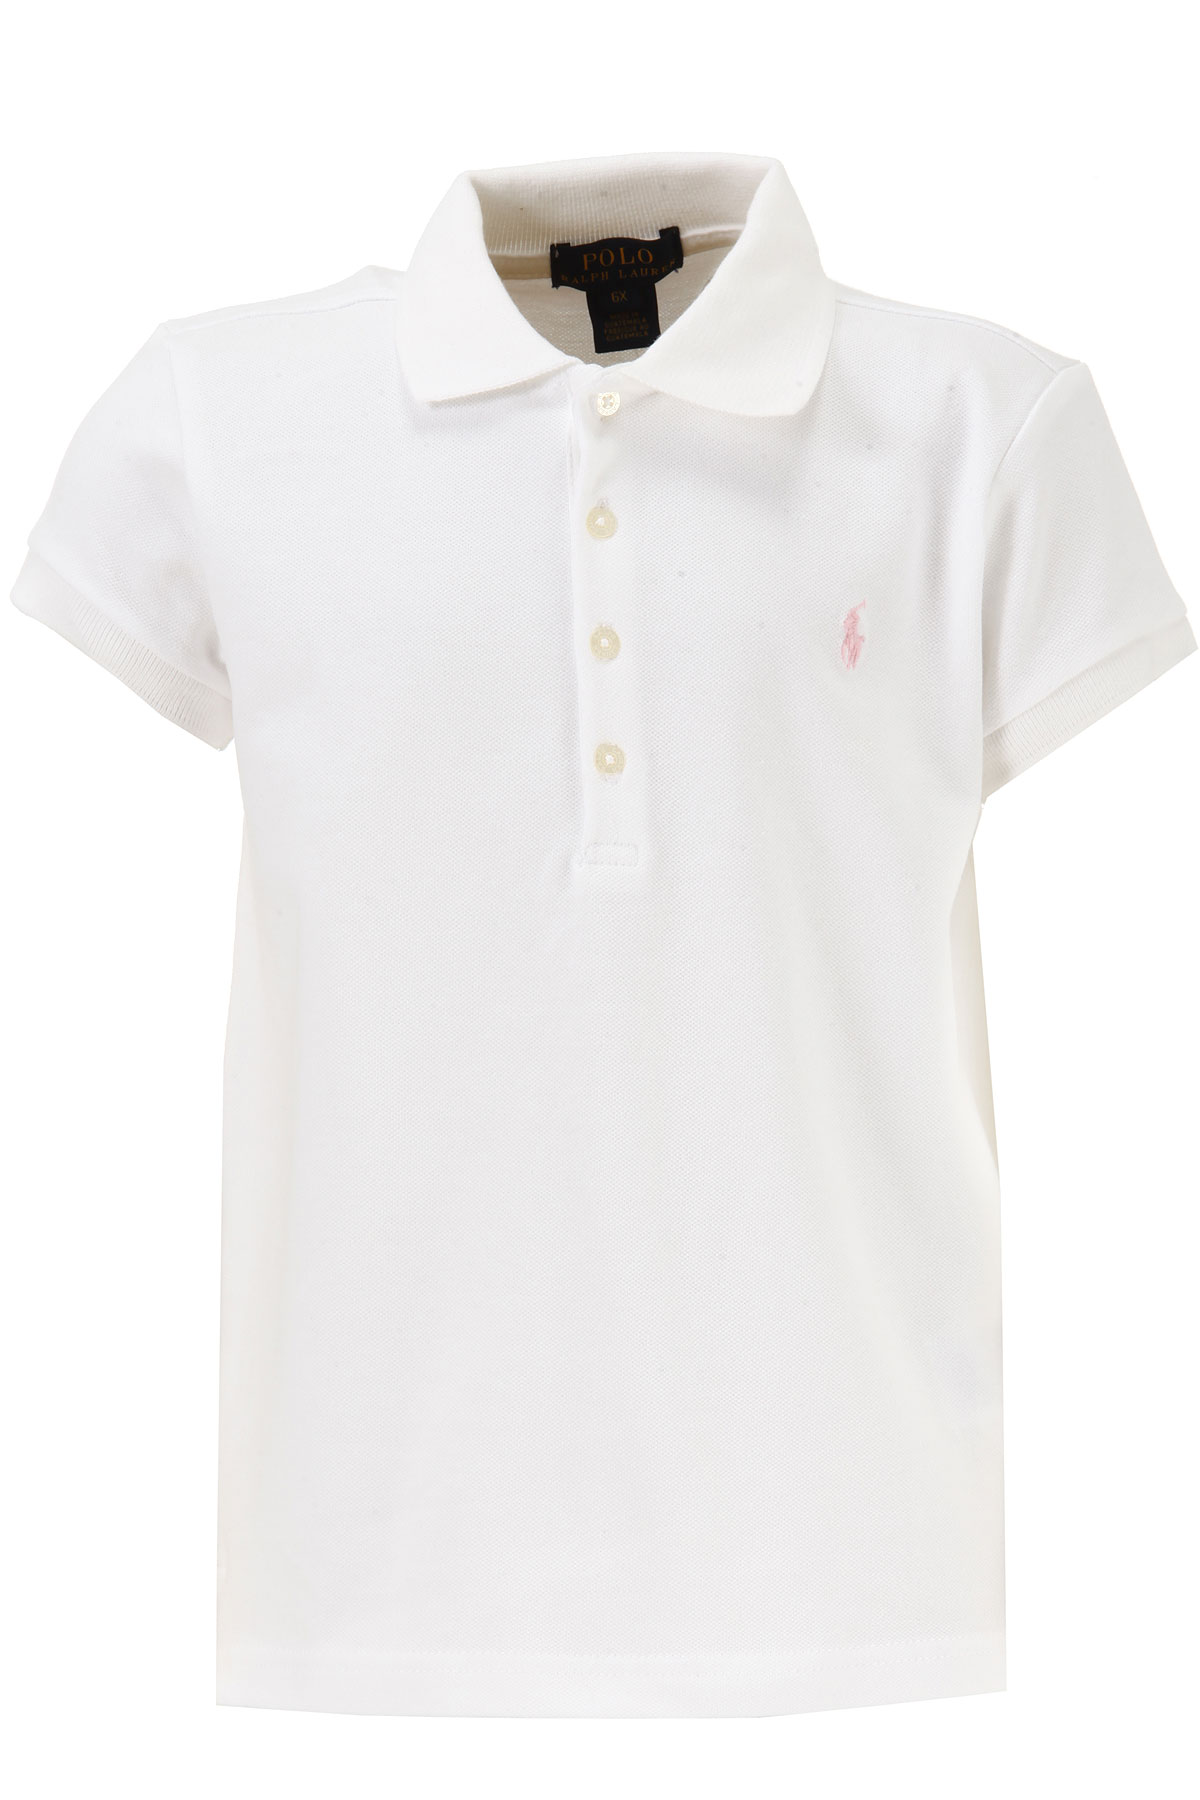 Image of Ralph Lauren Kids Polo Shirt for Girls On Sale in Outlet, White, Cotton, 2017, 2Y 6Y